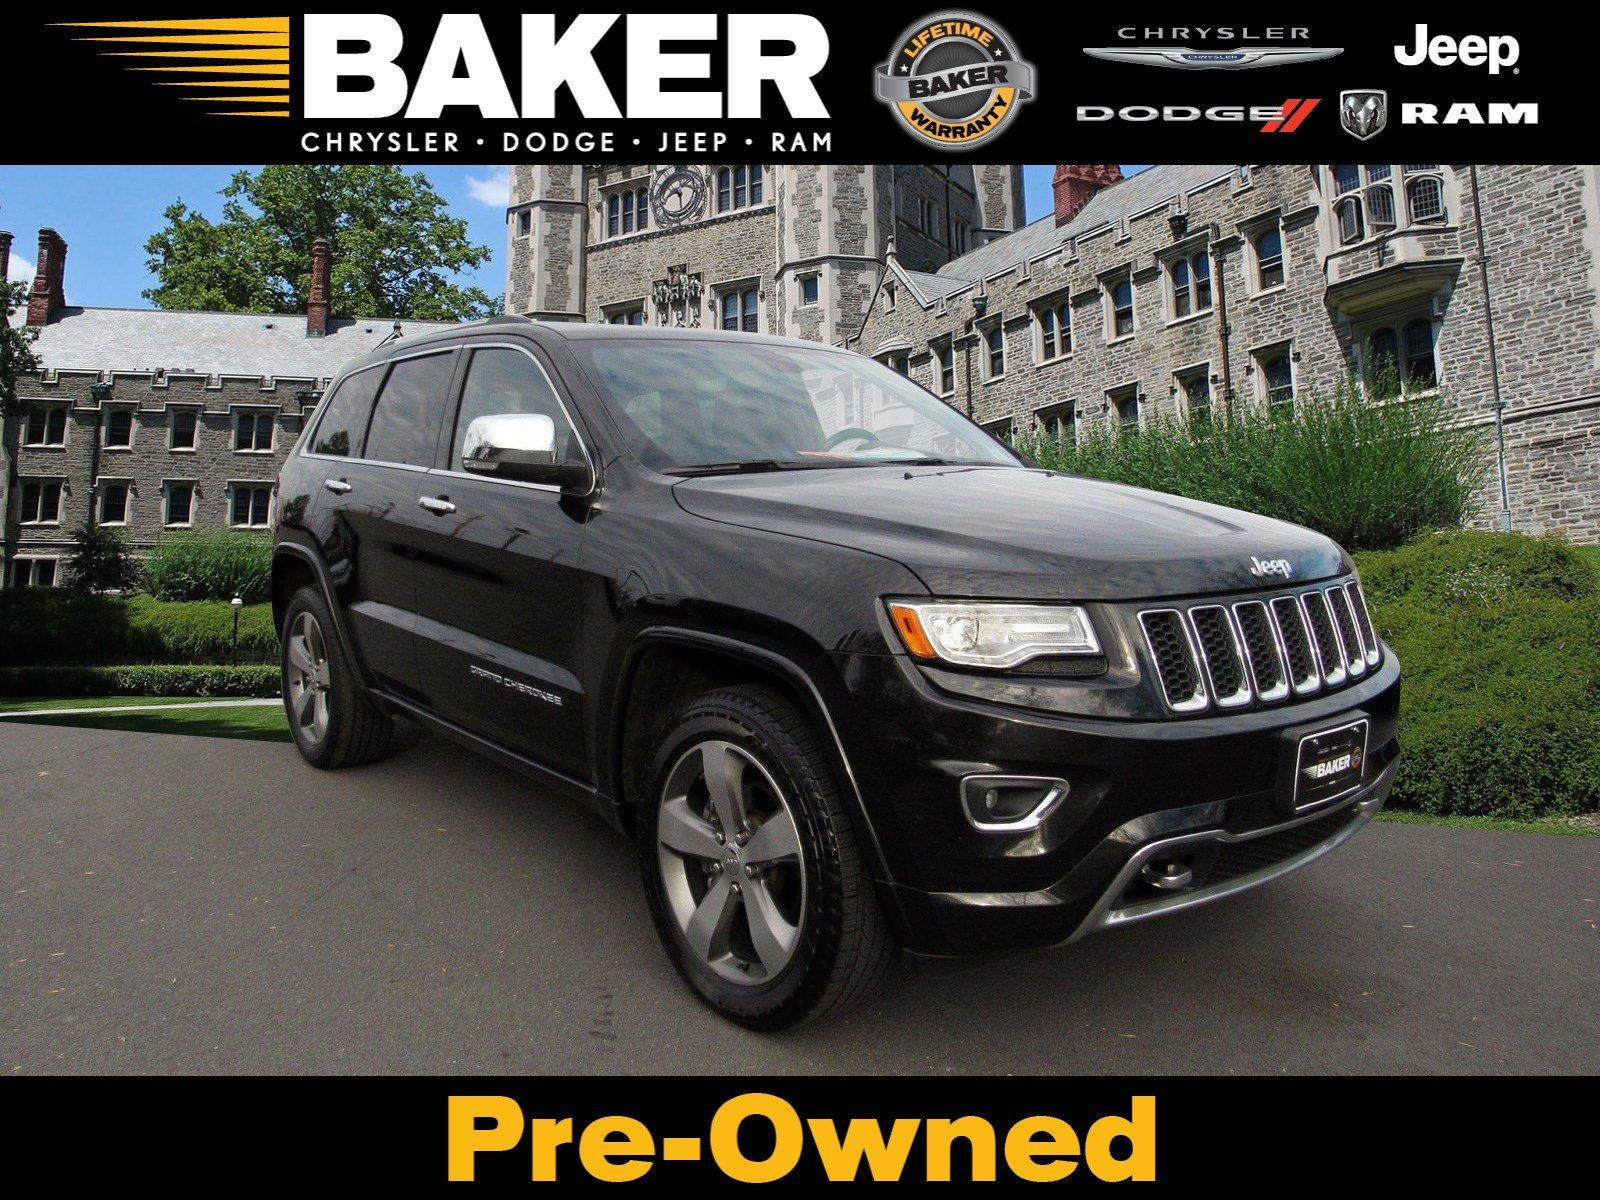 Used 2014 Jeep Grand Cherokee Overland For Sale 15 495 Victory Lotus Stock 528605